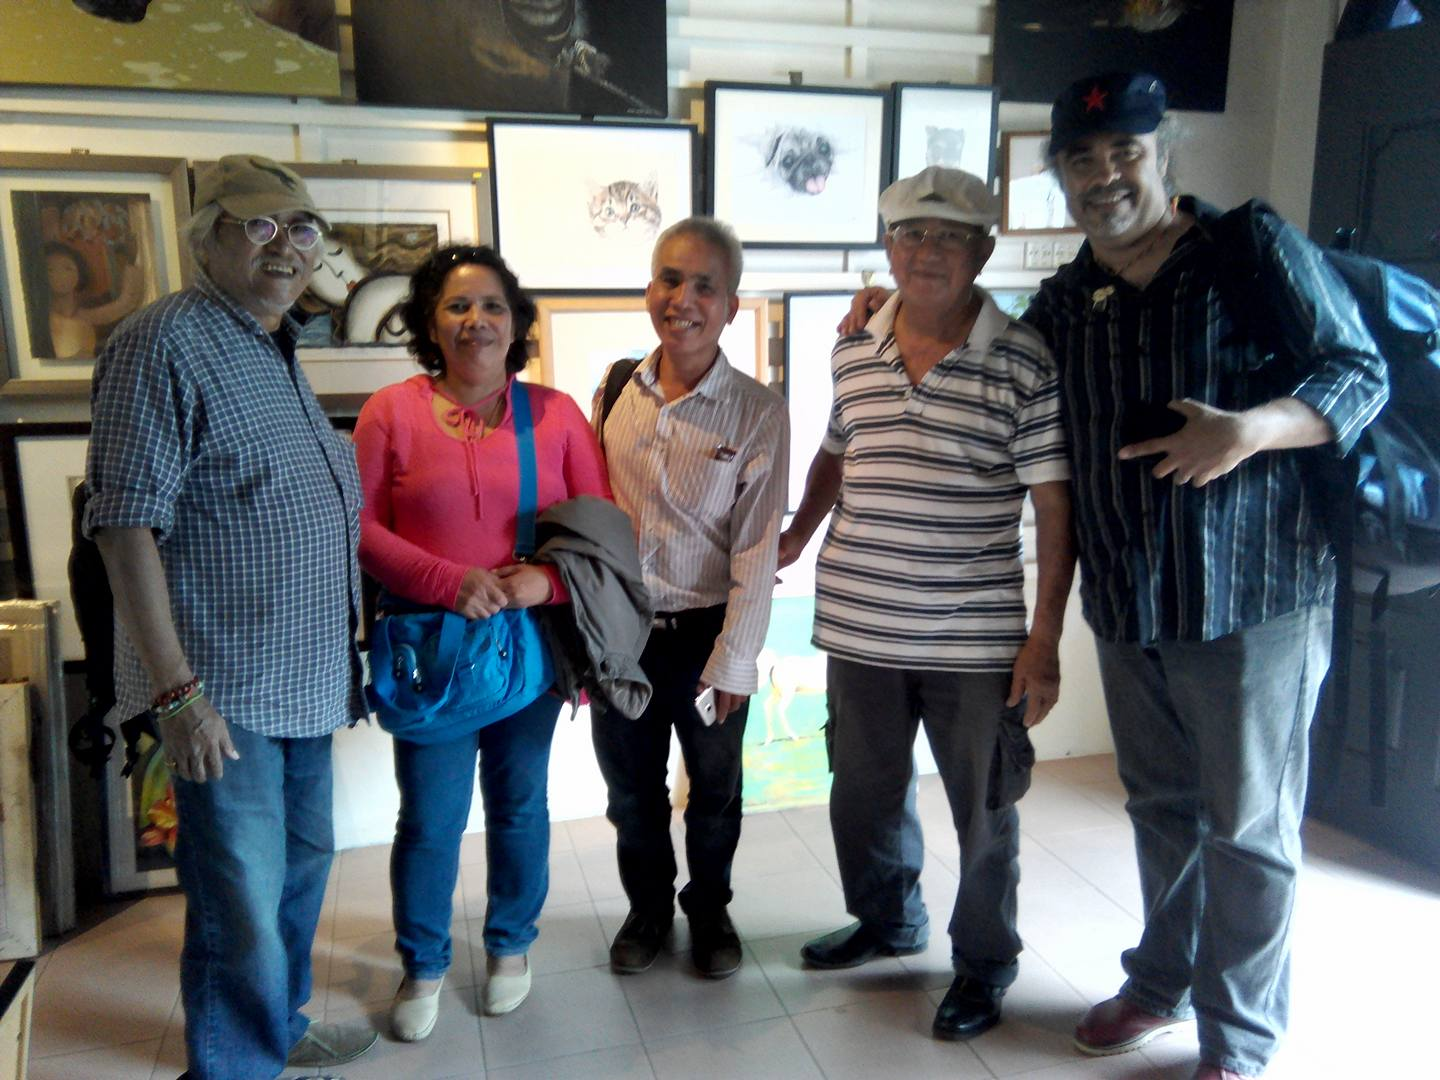 Khoo Khay Tat displays his artworks in Alyssa Gallery.